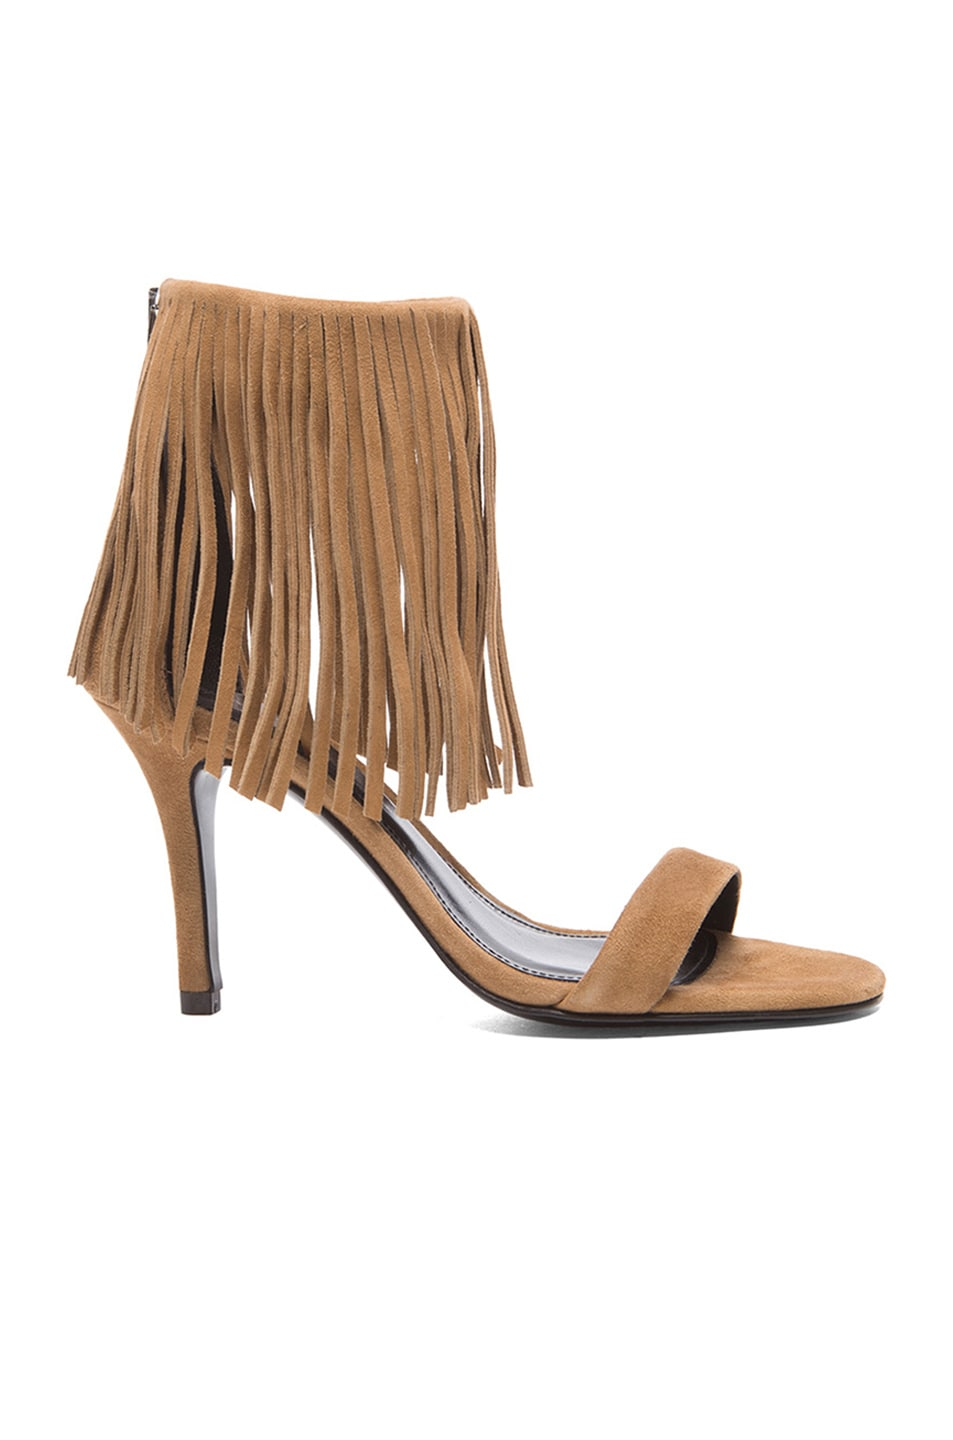 Image 1 of elysewalker los angeles Alex Suede Heels in Tan Suede